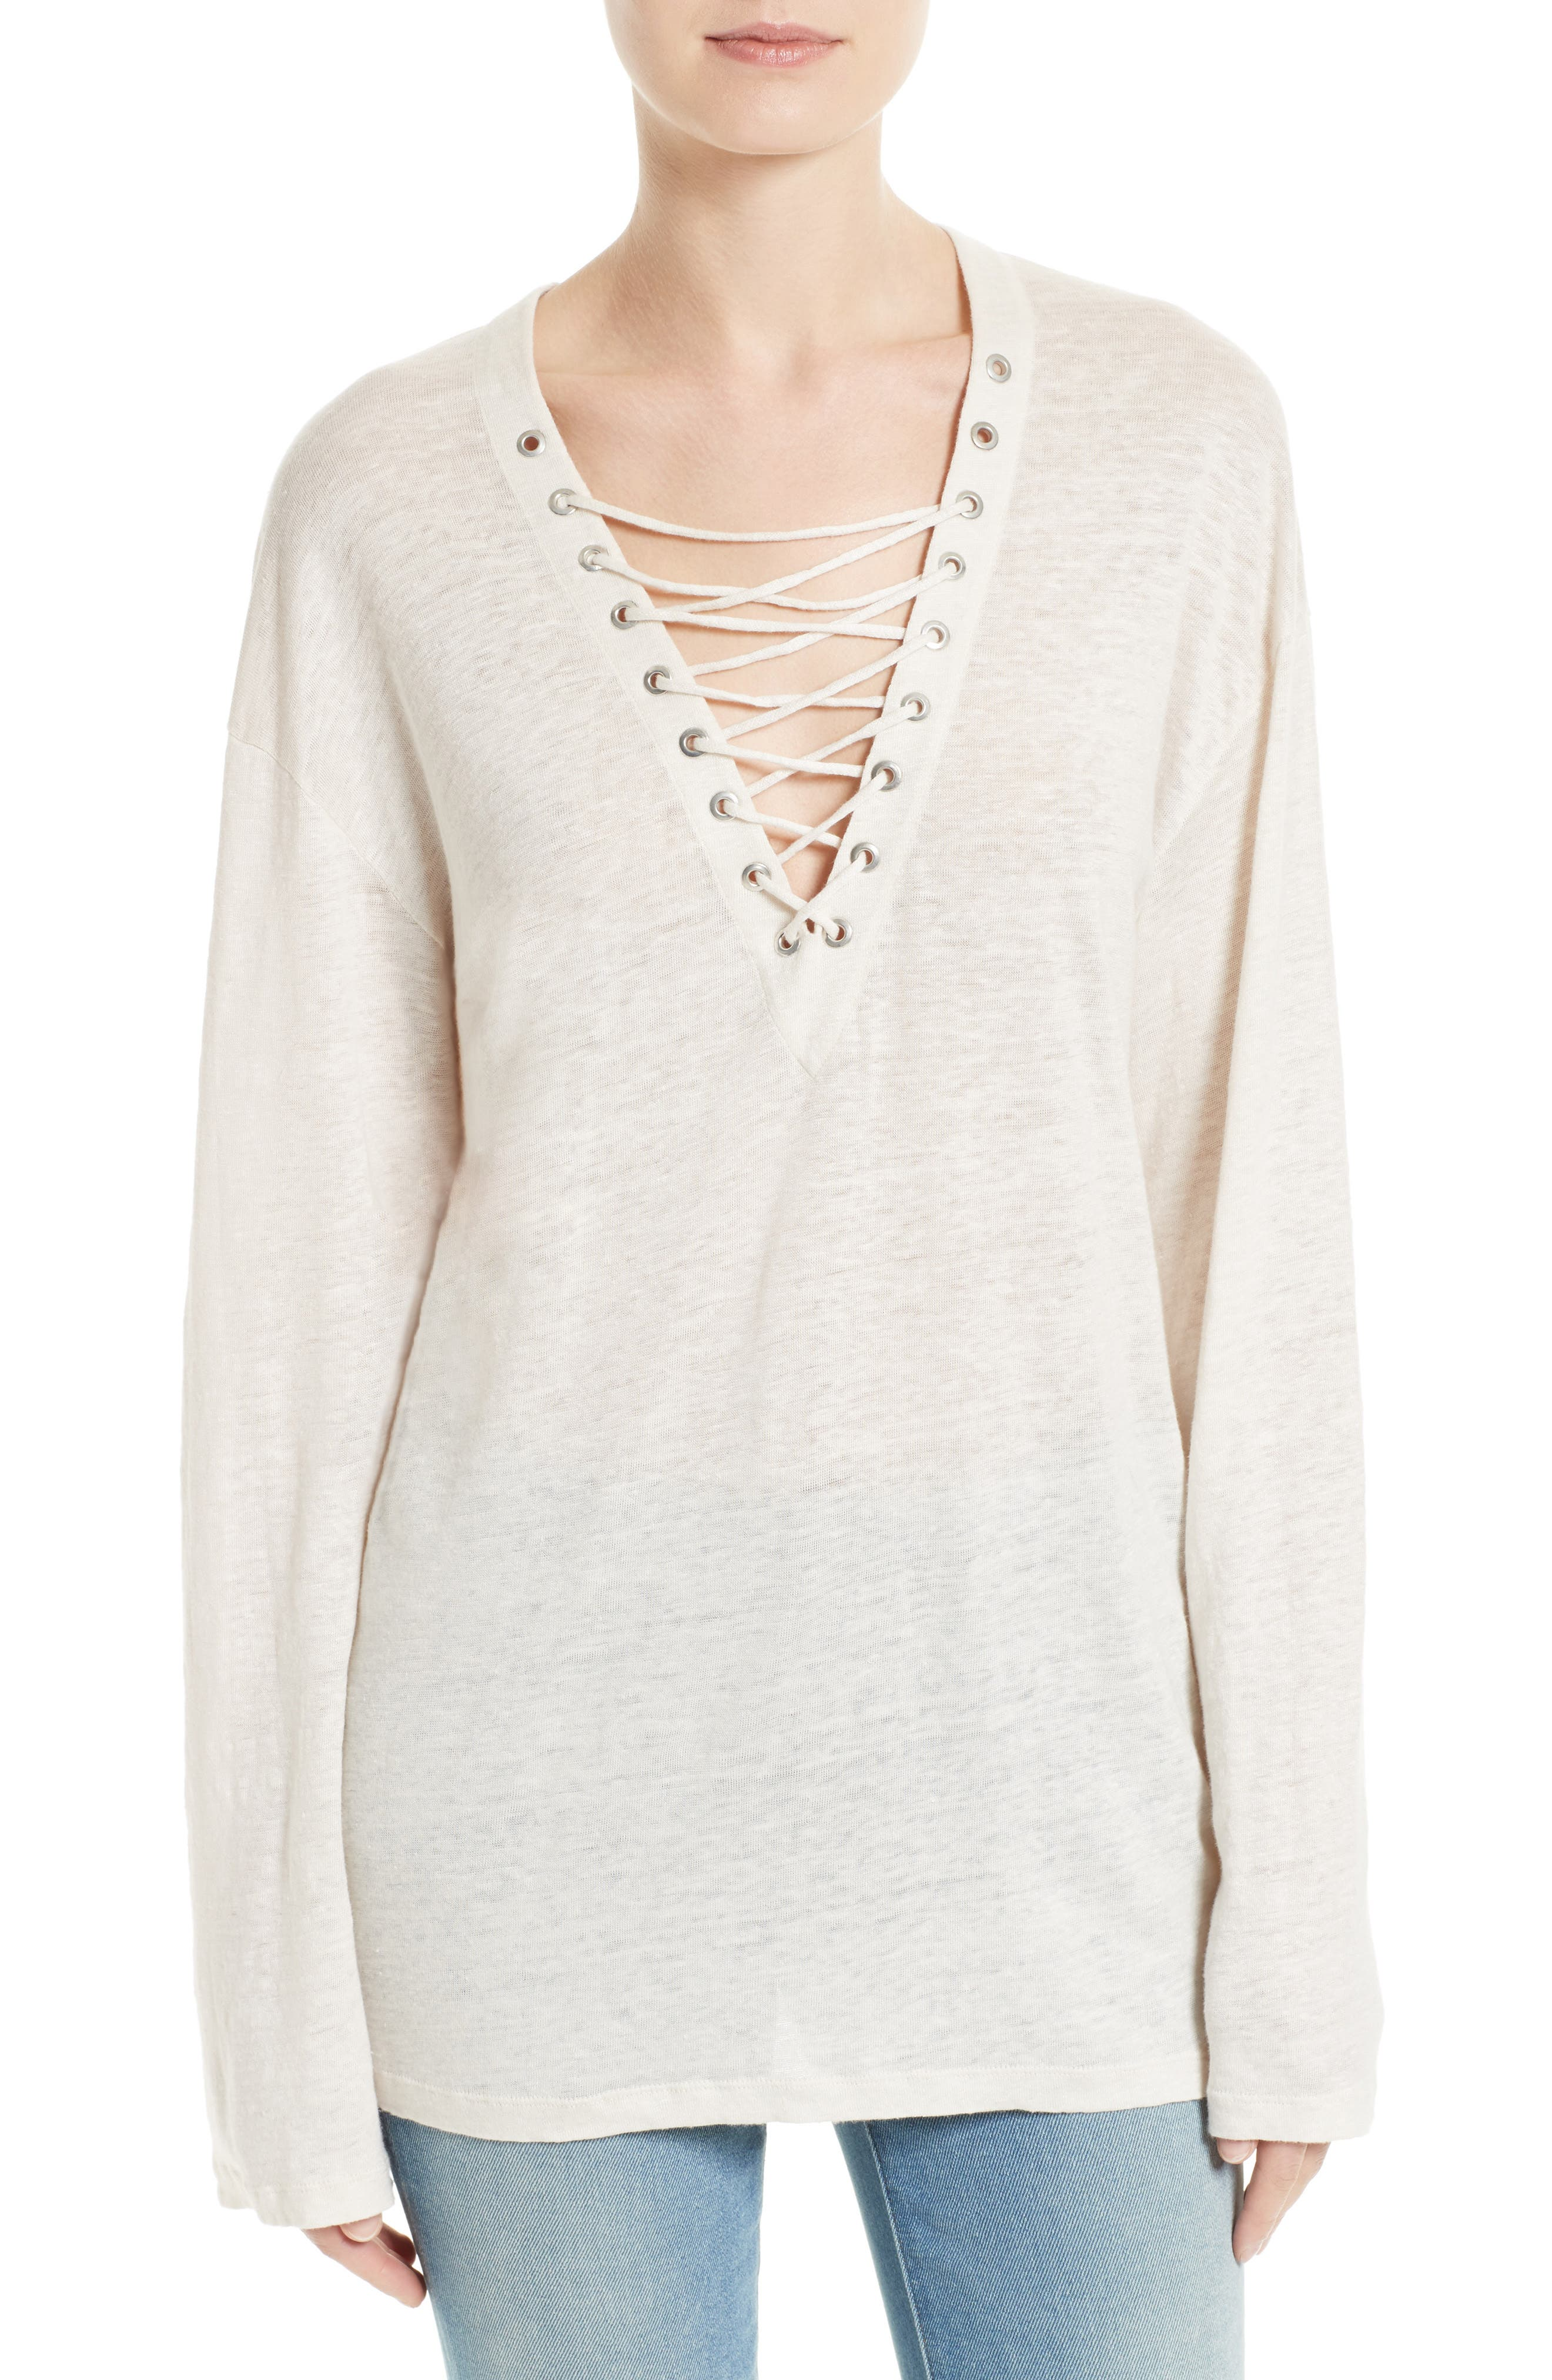 Main Image - IRO Alety Lace-Up Linen Top